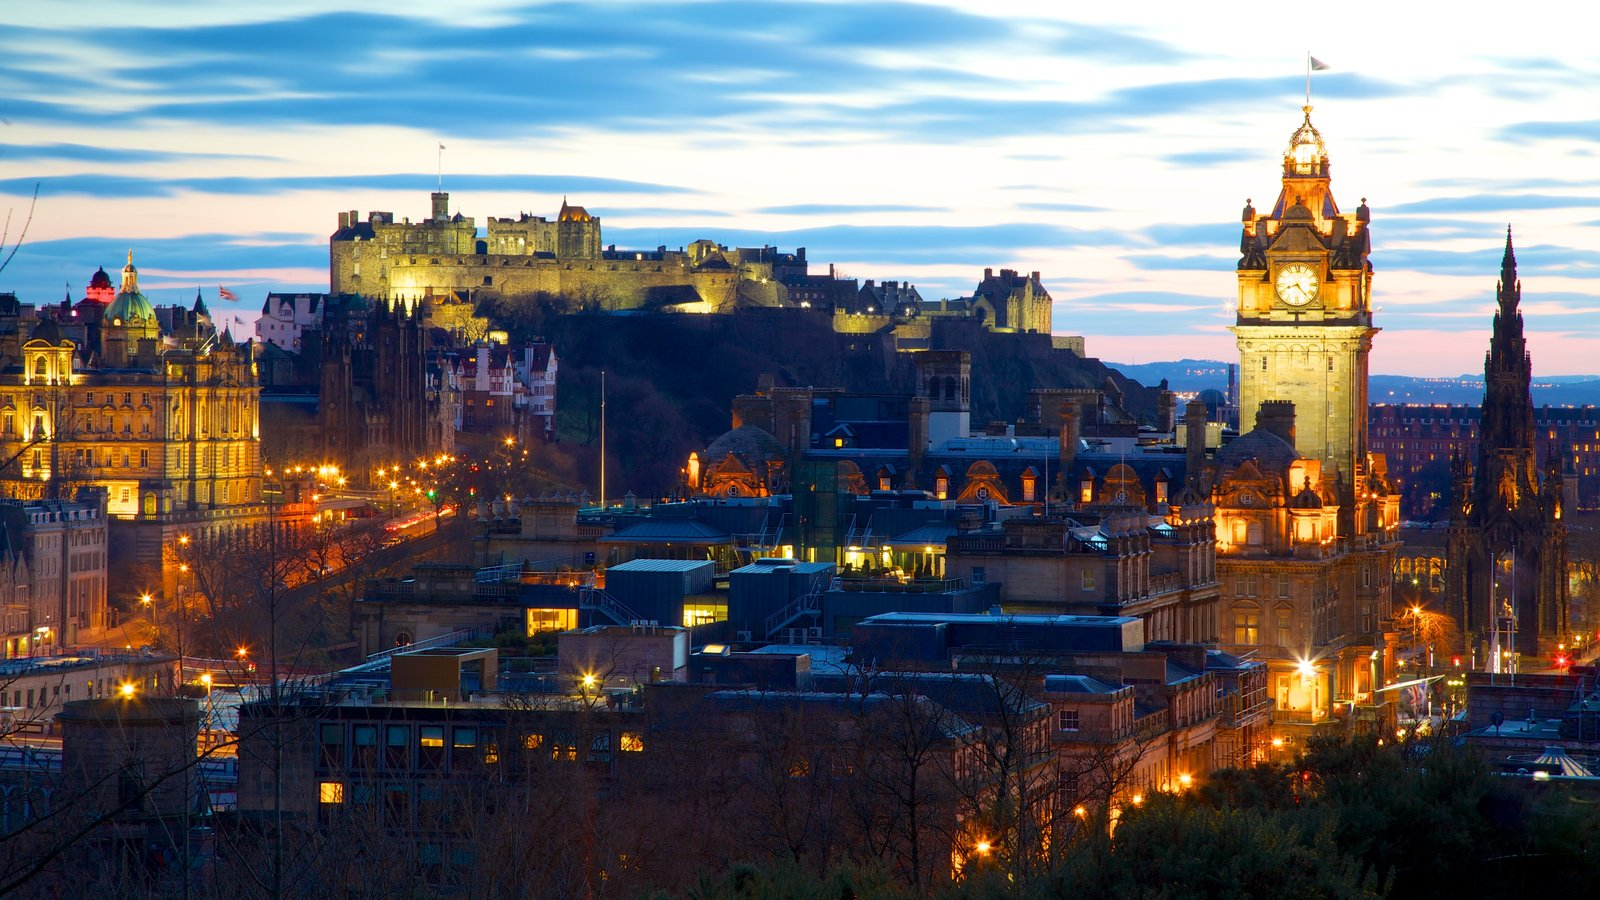 Calton Hill which includes night scenes, heritage architecture and a city